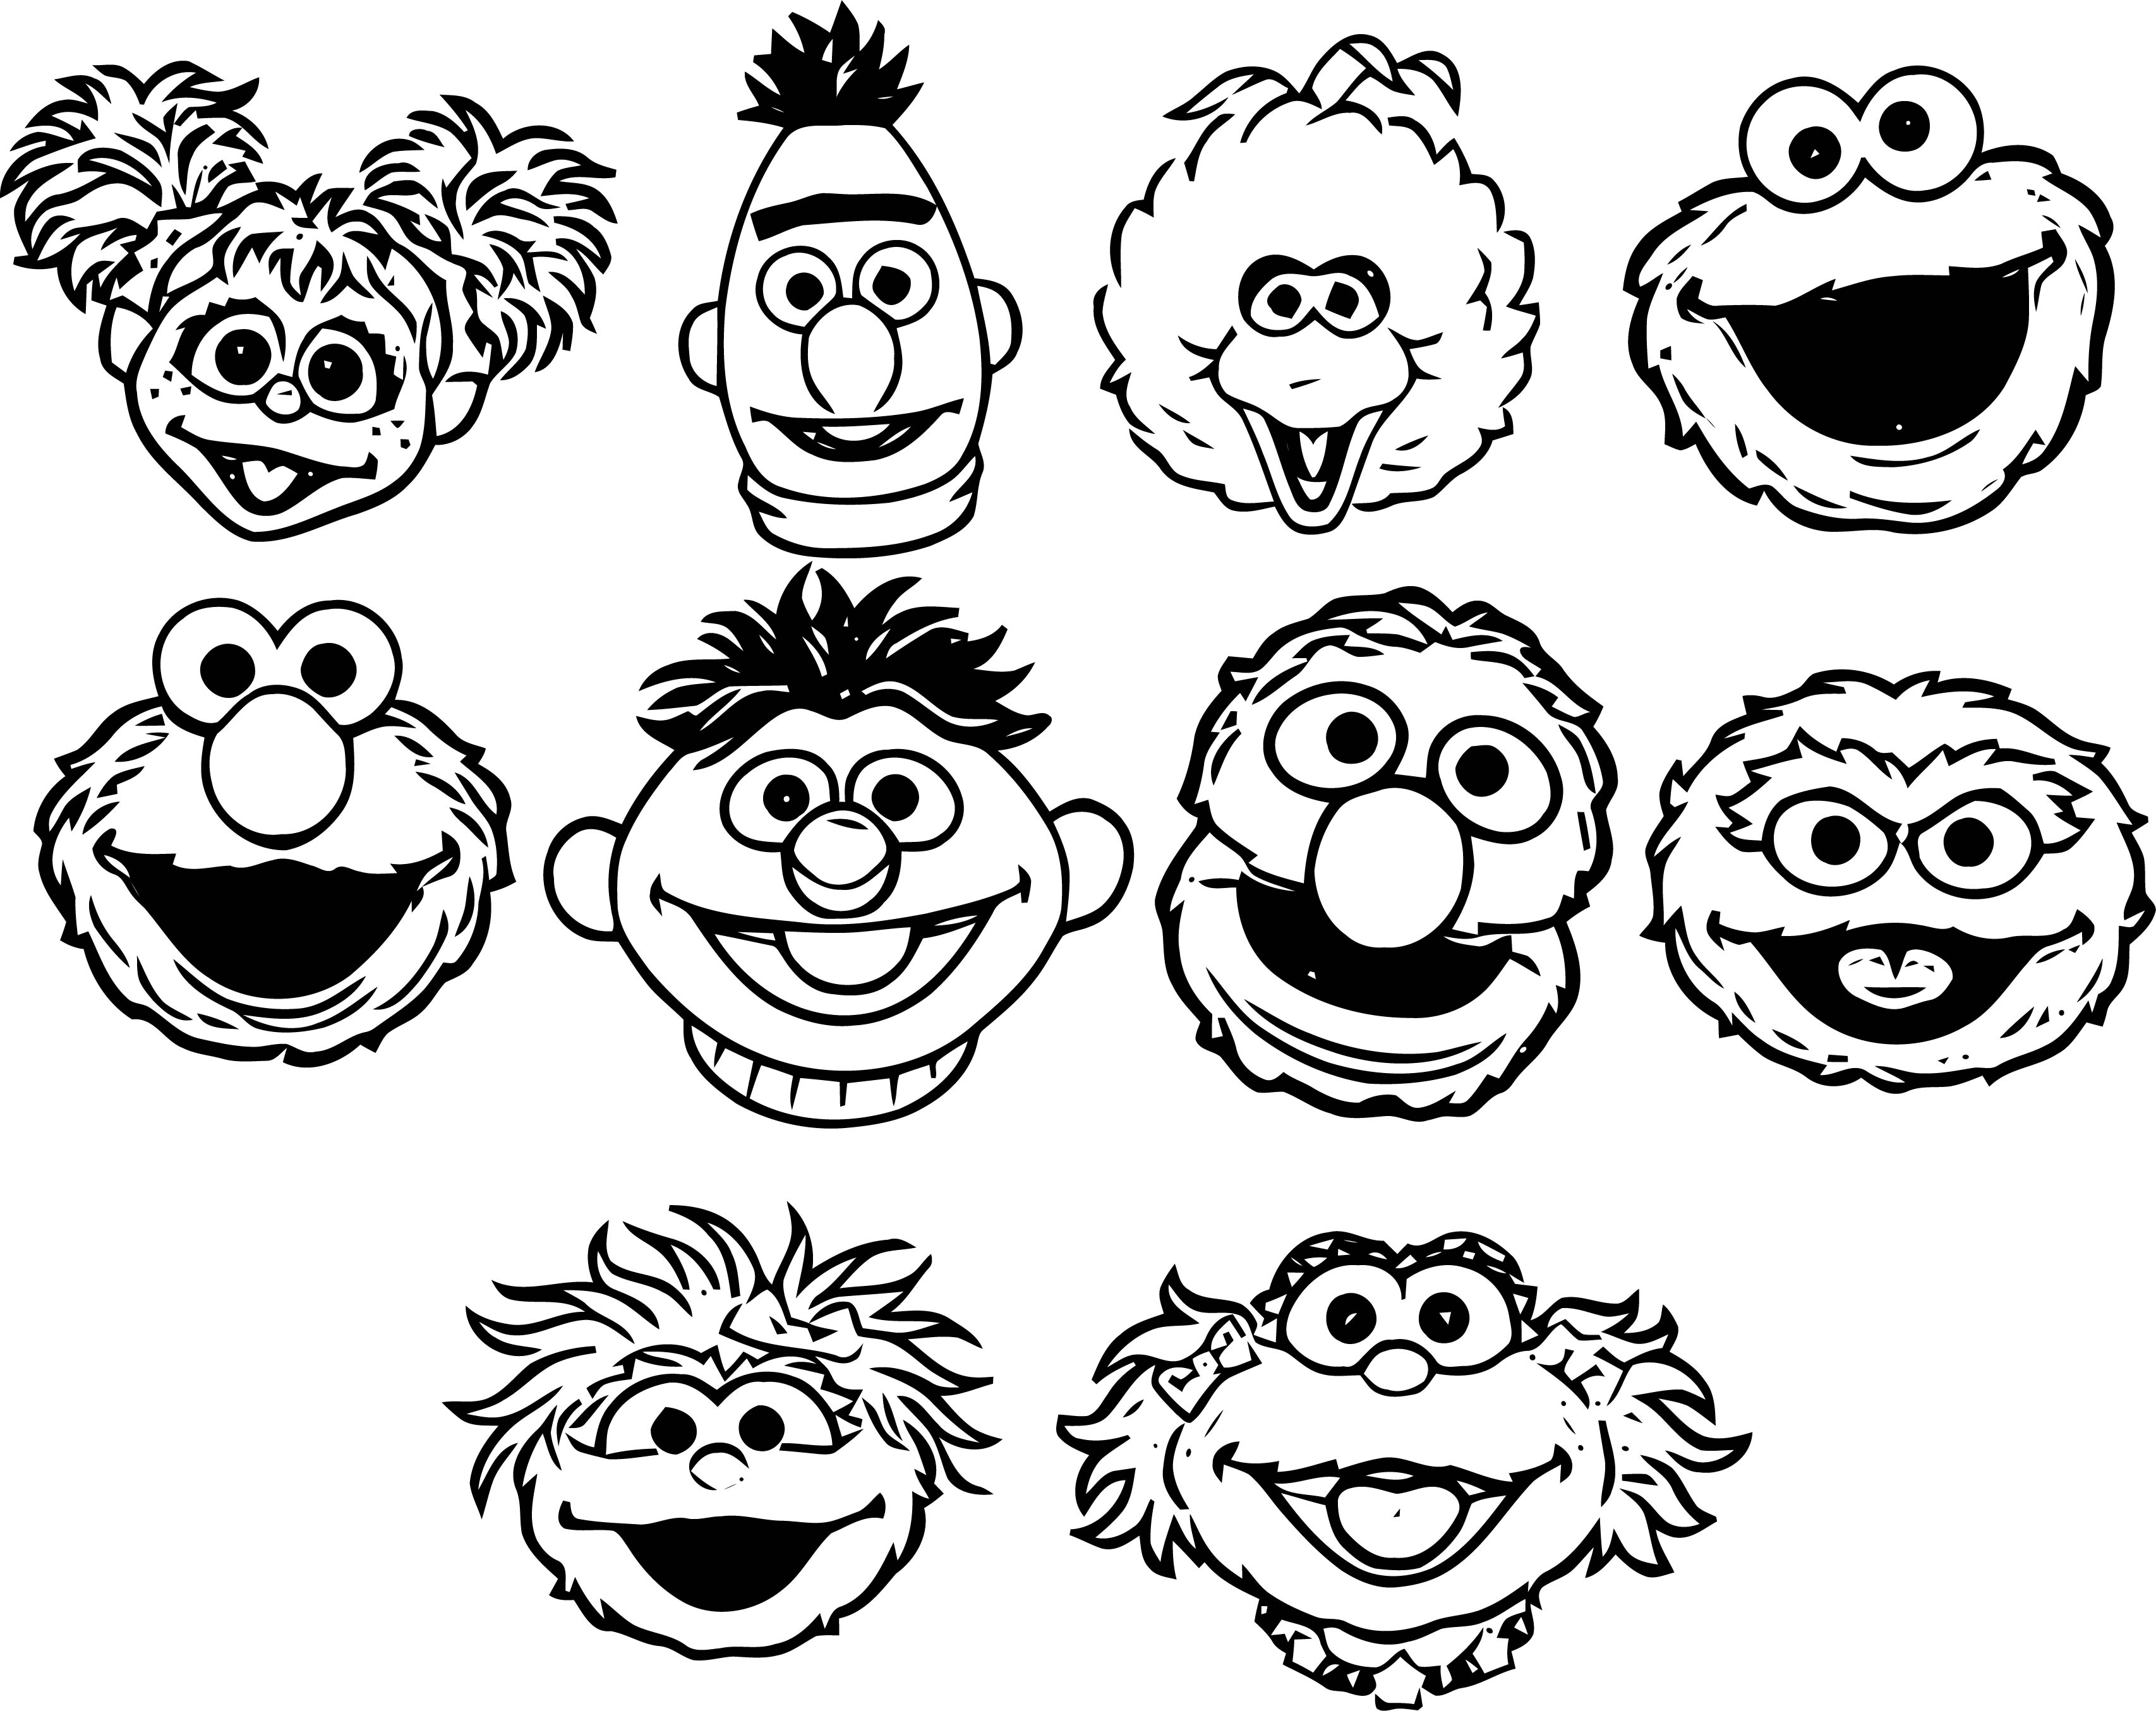 Sesame Street Face Character Coloring Page